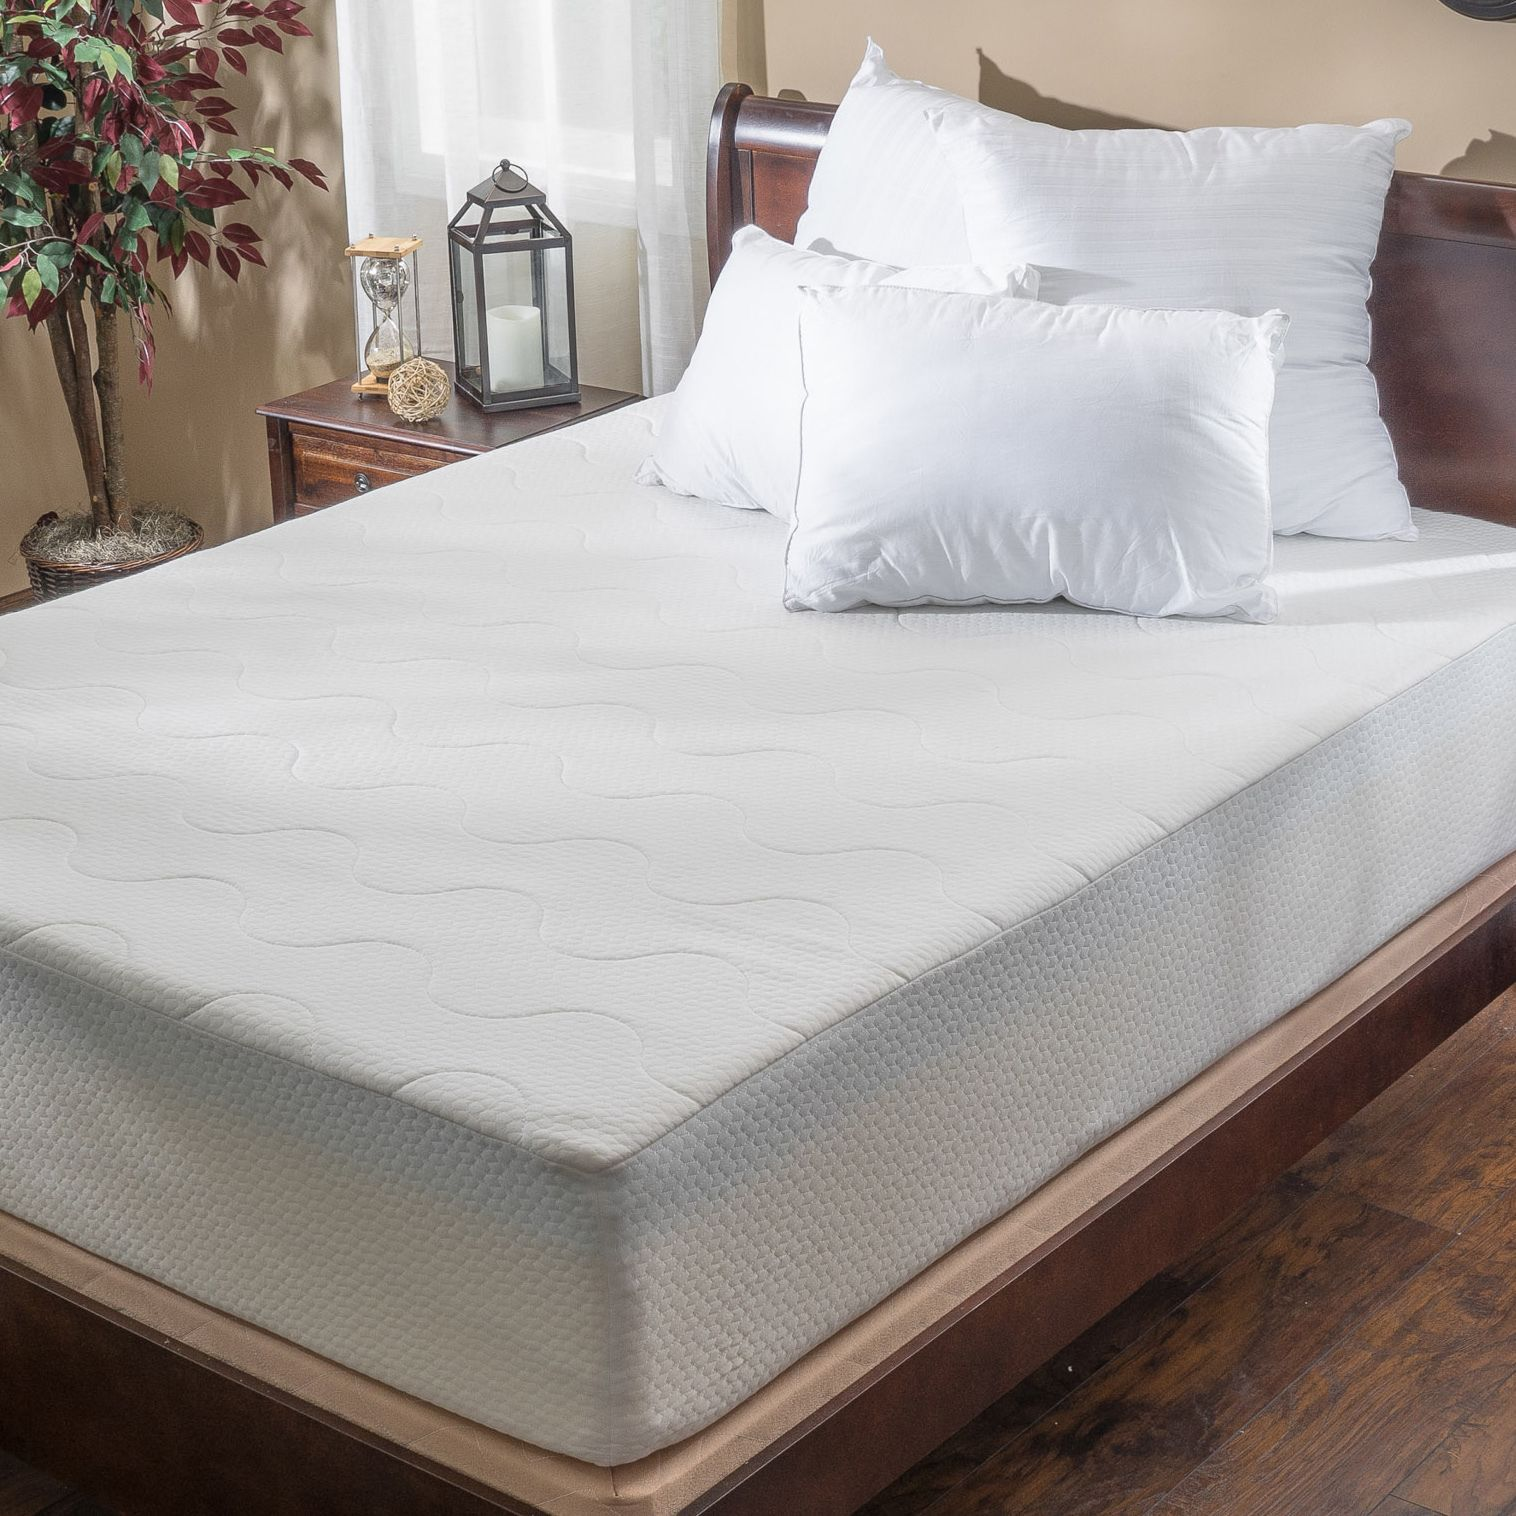 choice 14 inch queen size memory foam mattress by christopher knight